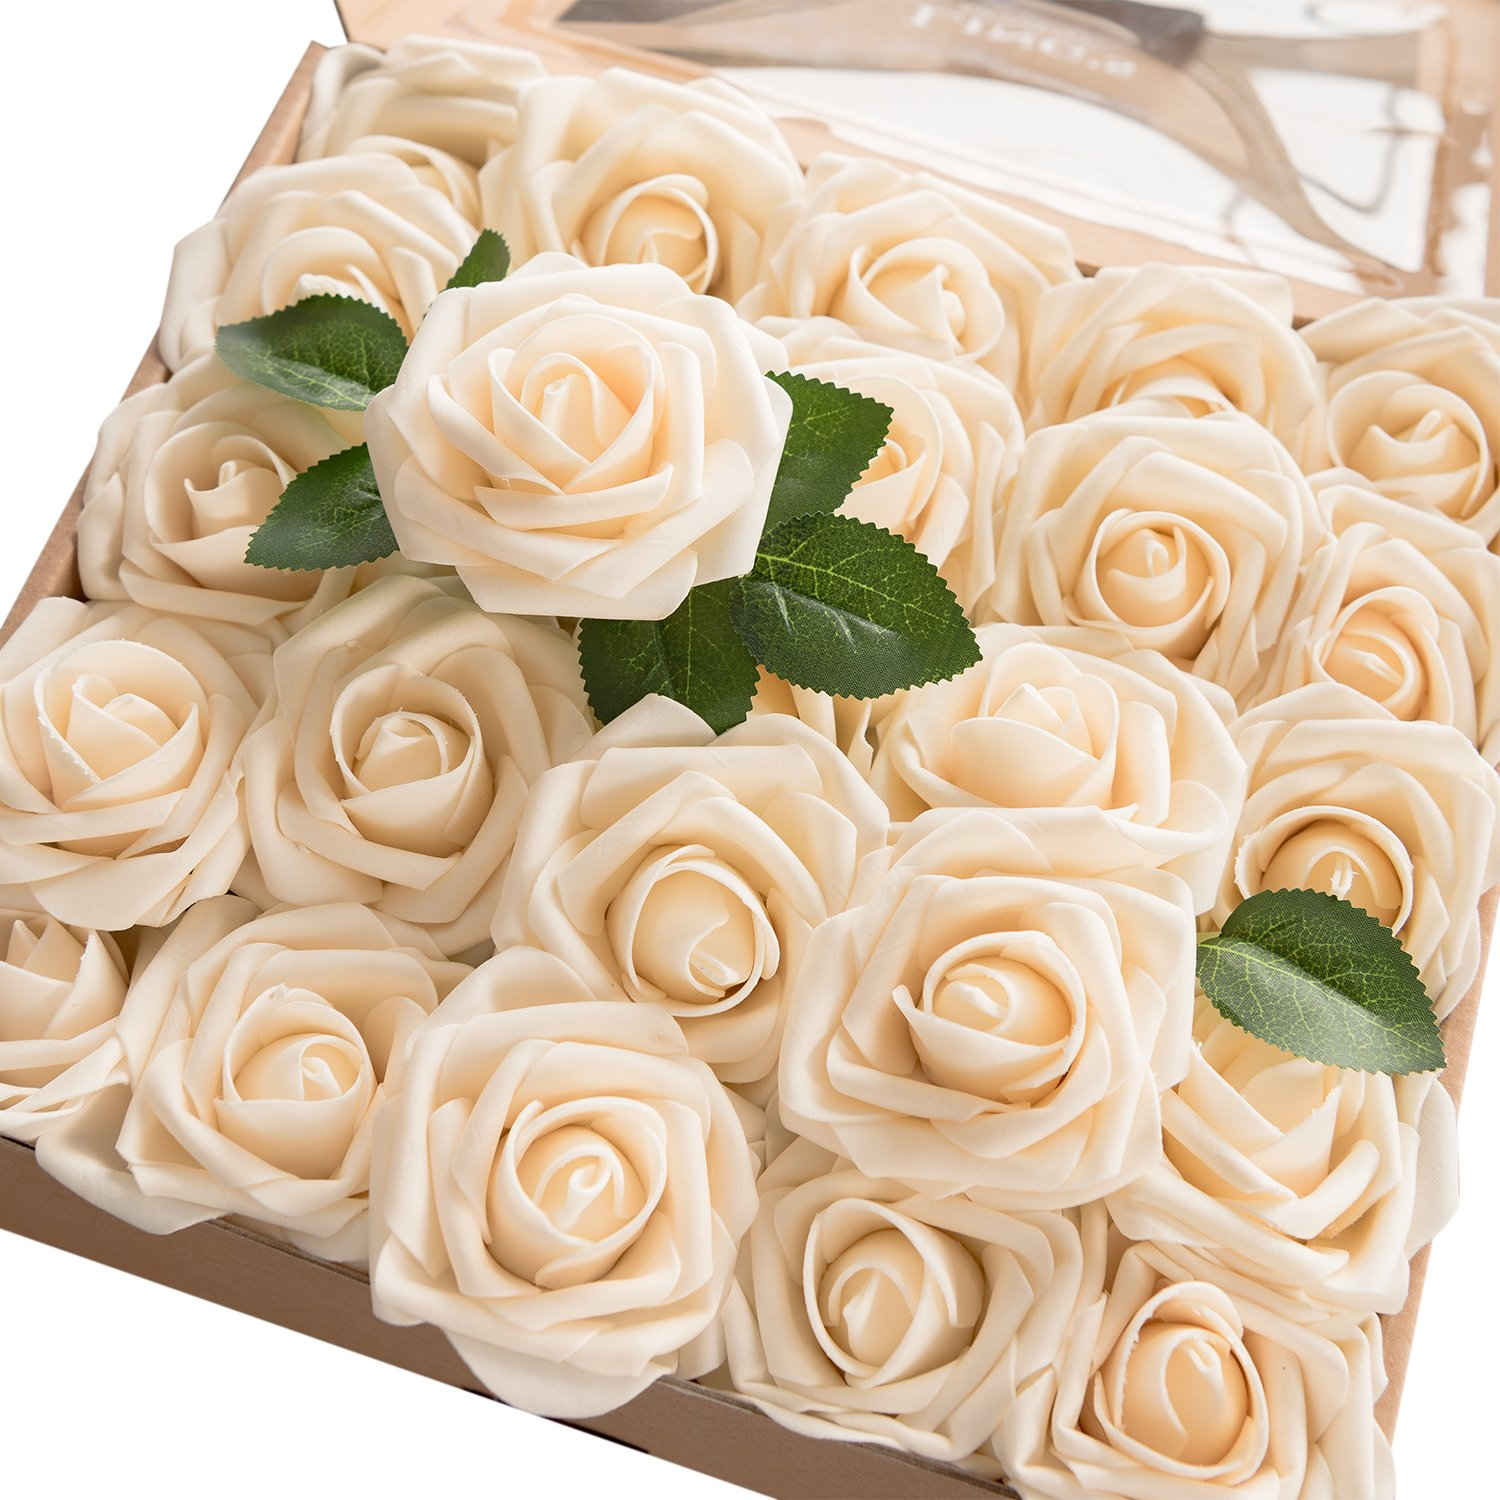 Ling's moment Artificial Flowers 50pcs Real Looking Cream ...